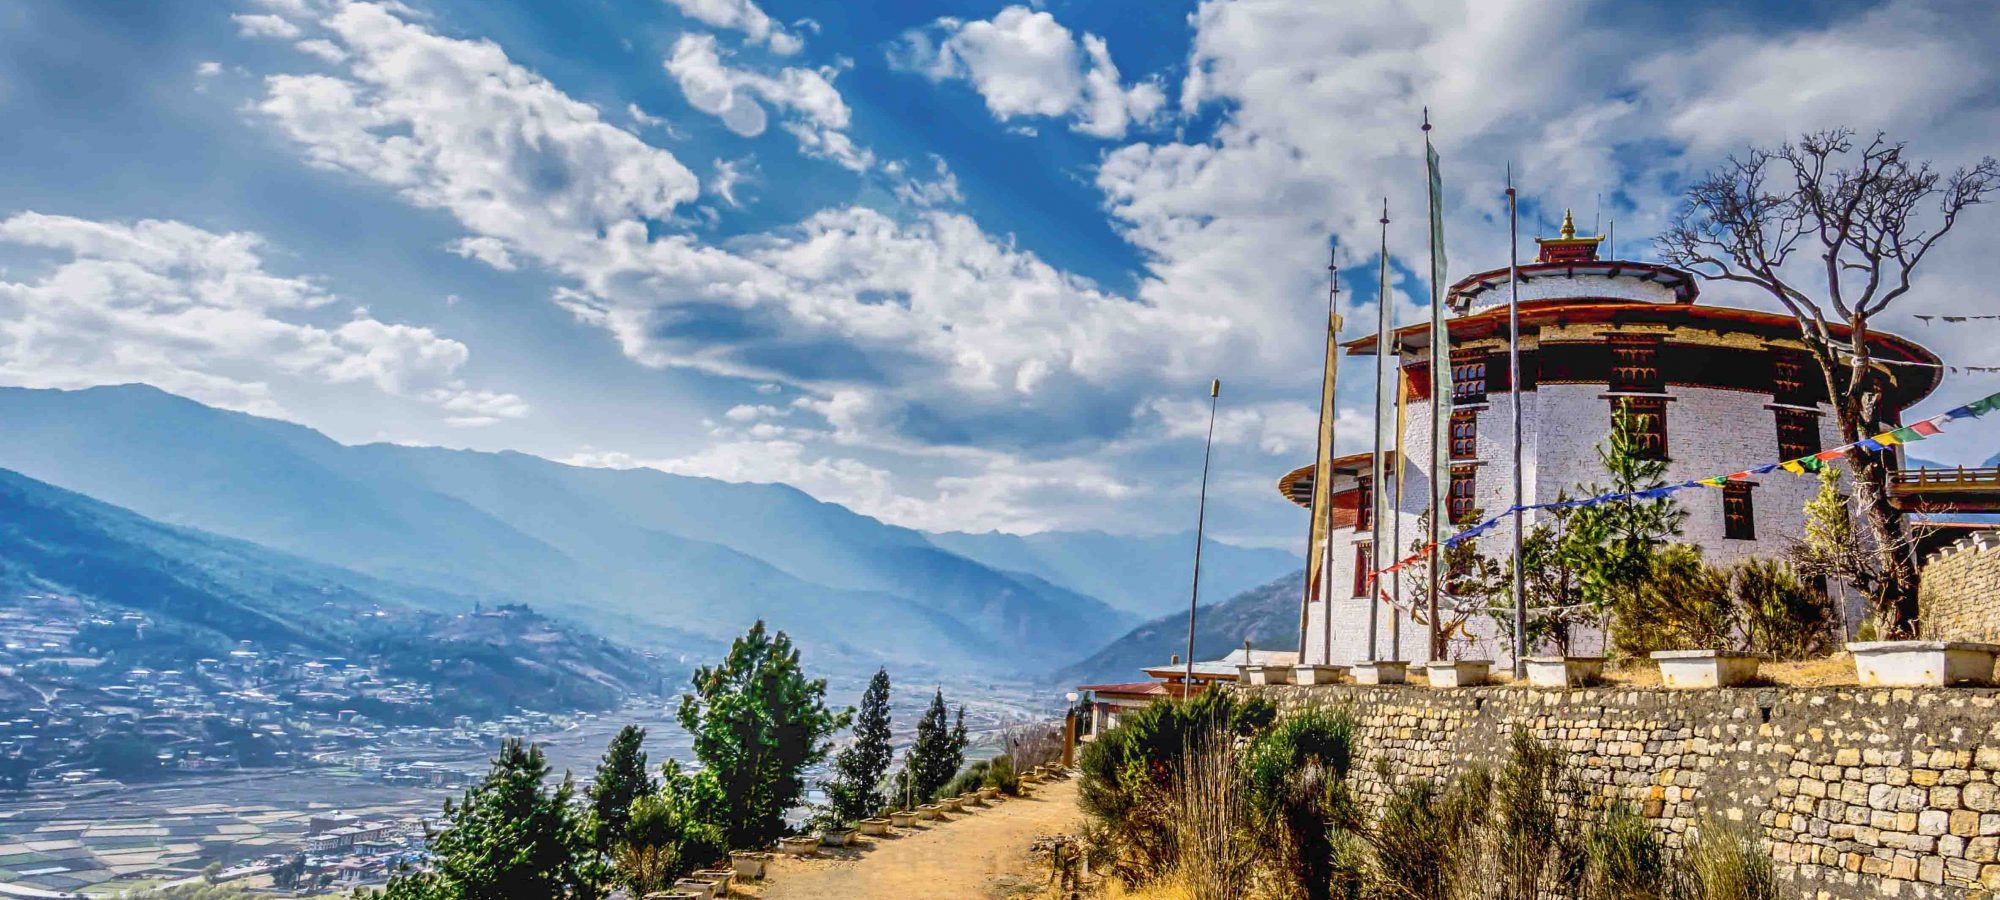 The National Museum of Bhutan